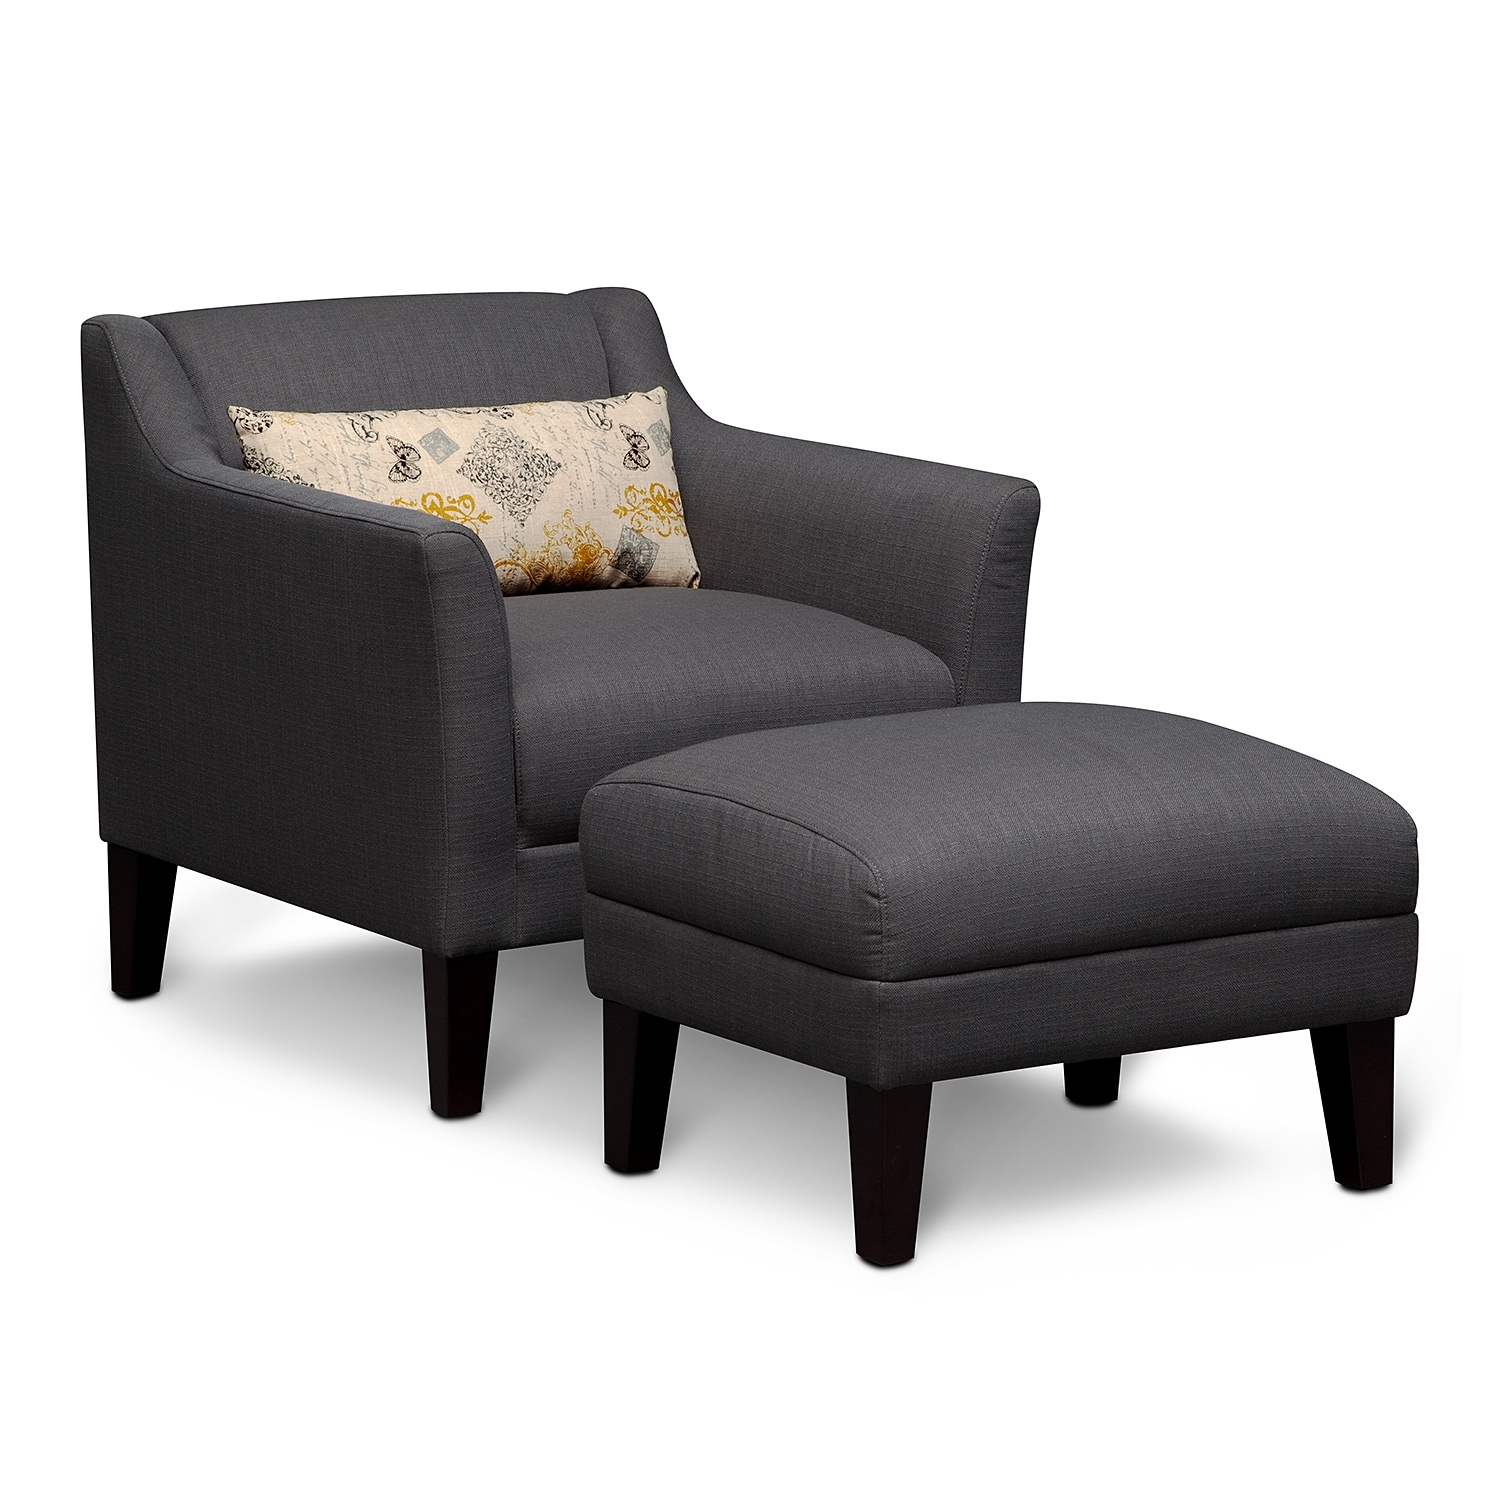 Living room accent chairs with arms - Living Rooms The Elizabeth Collection Accent Chair Ottoman